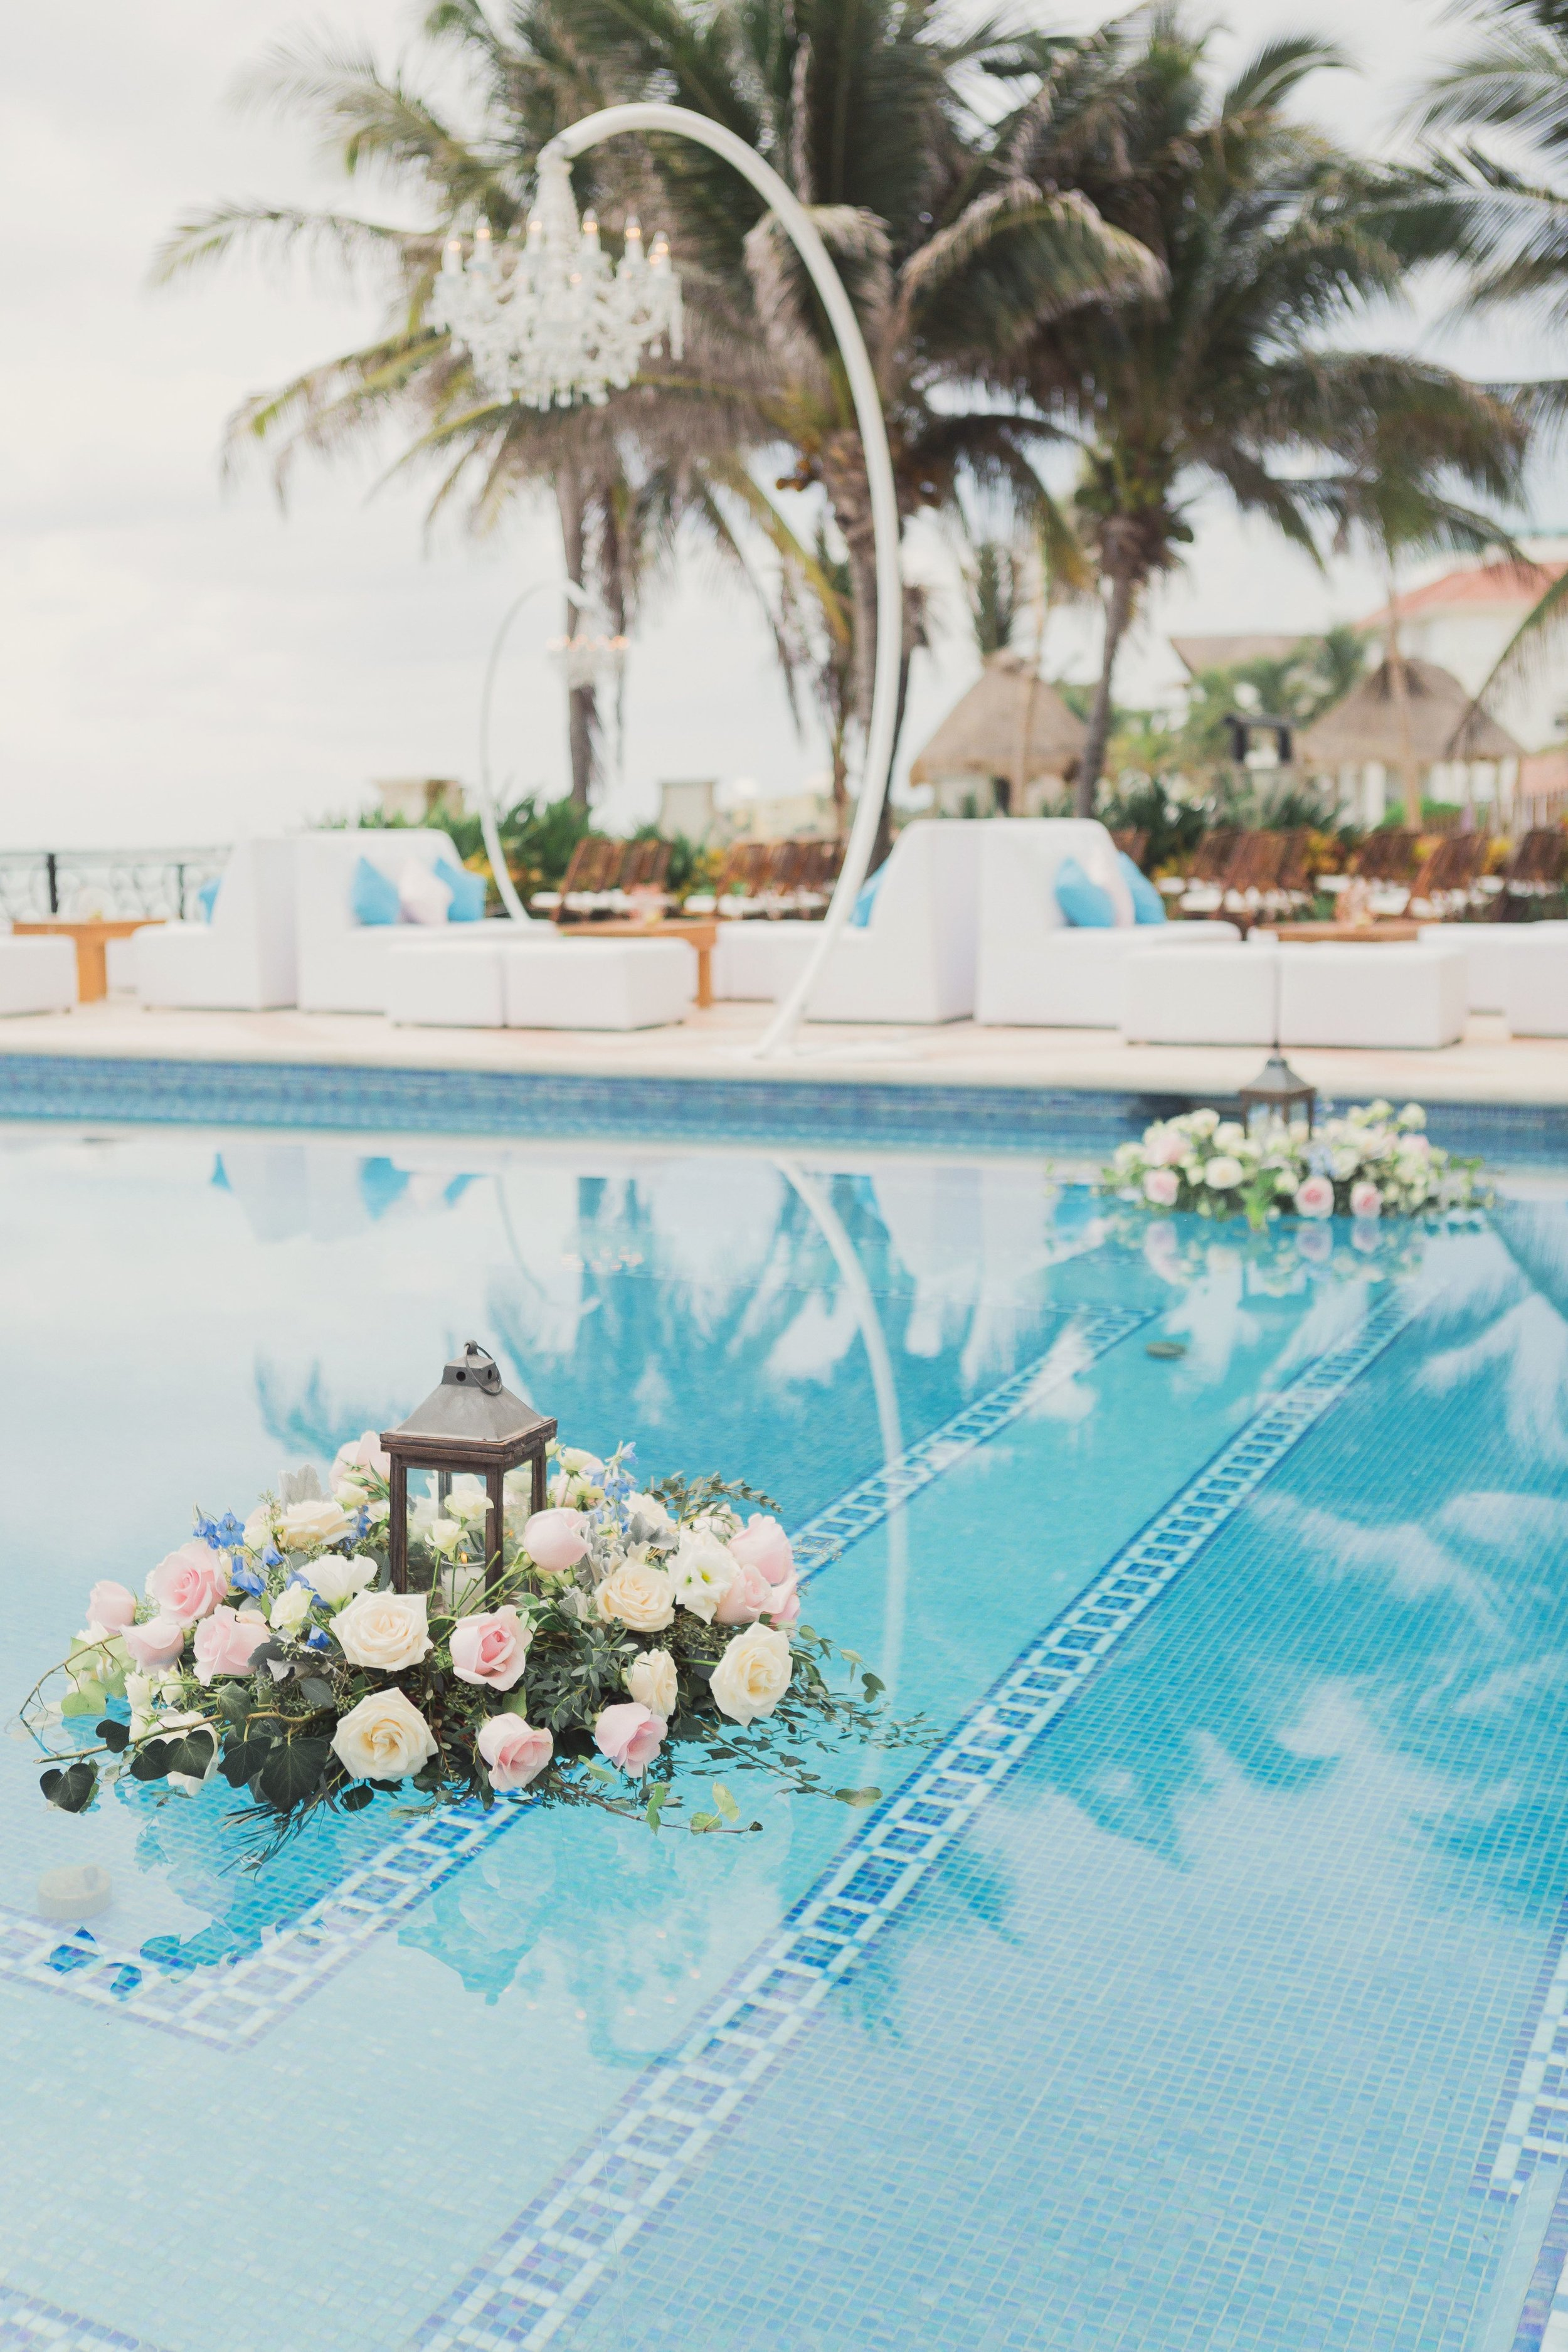 cancun-wedding-venue-villa-la-joya-57 copy-websize.jpg